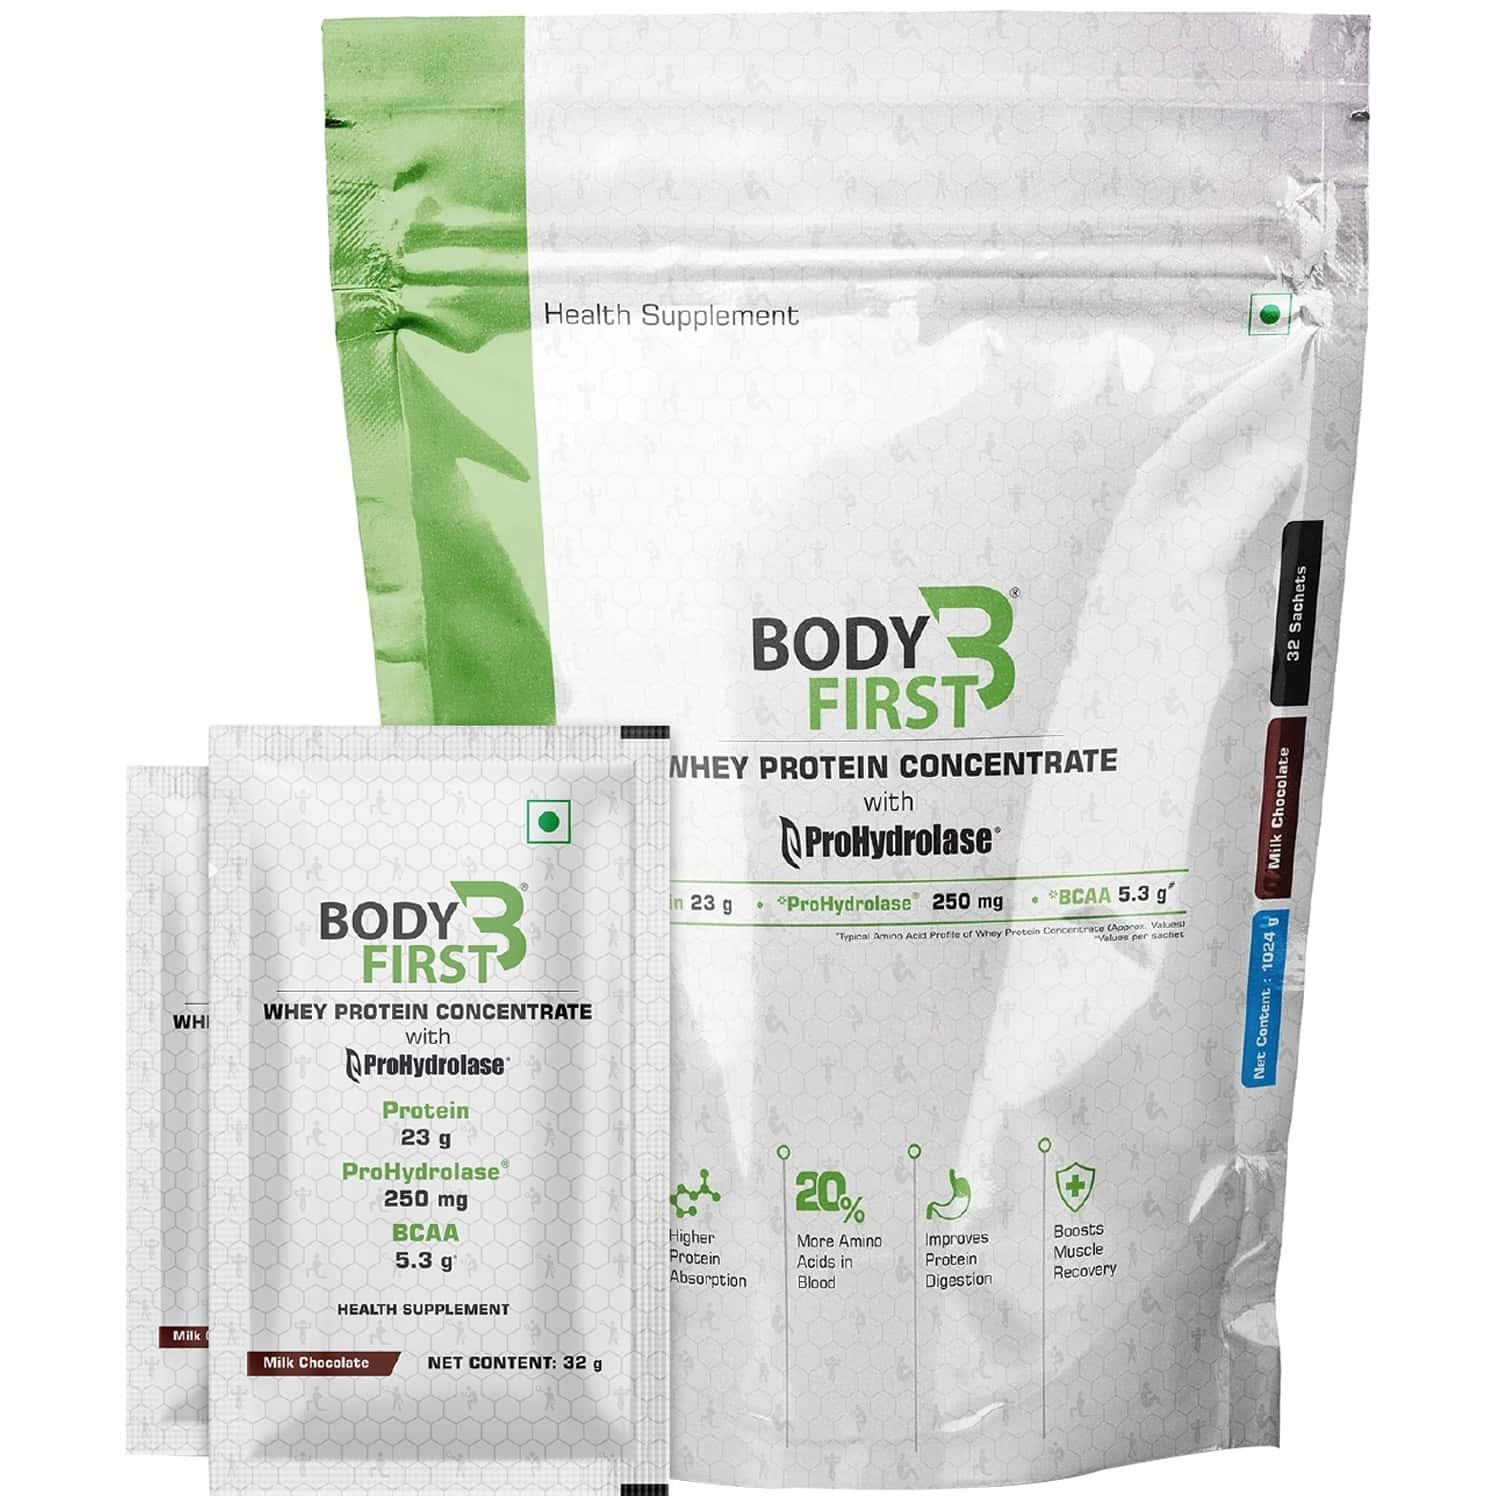 Bodyfirst Whey Protein Concentrate / Hydro With Prohydrolase Milk Chocolate